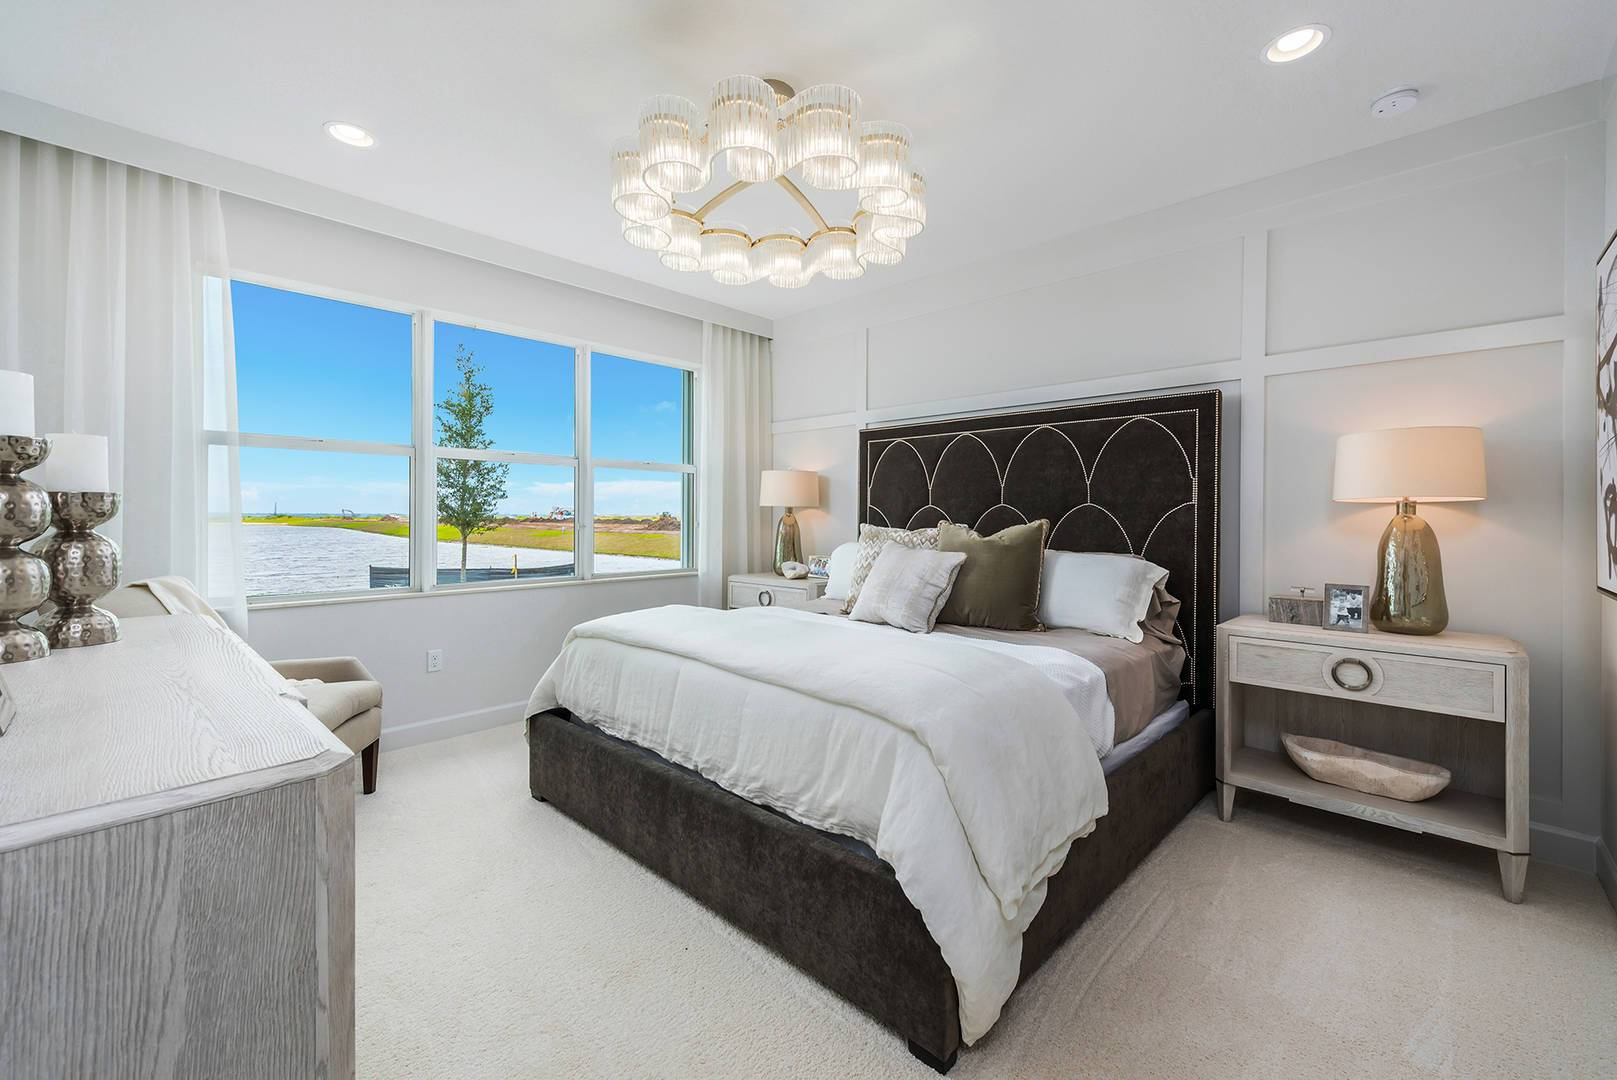 Bedroom featured in the Lucia By GL Homes in Martin-St. Lucie-Okeechobee Counties, FL